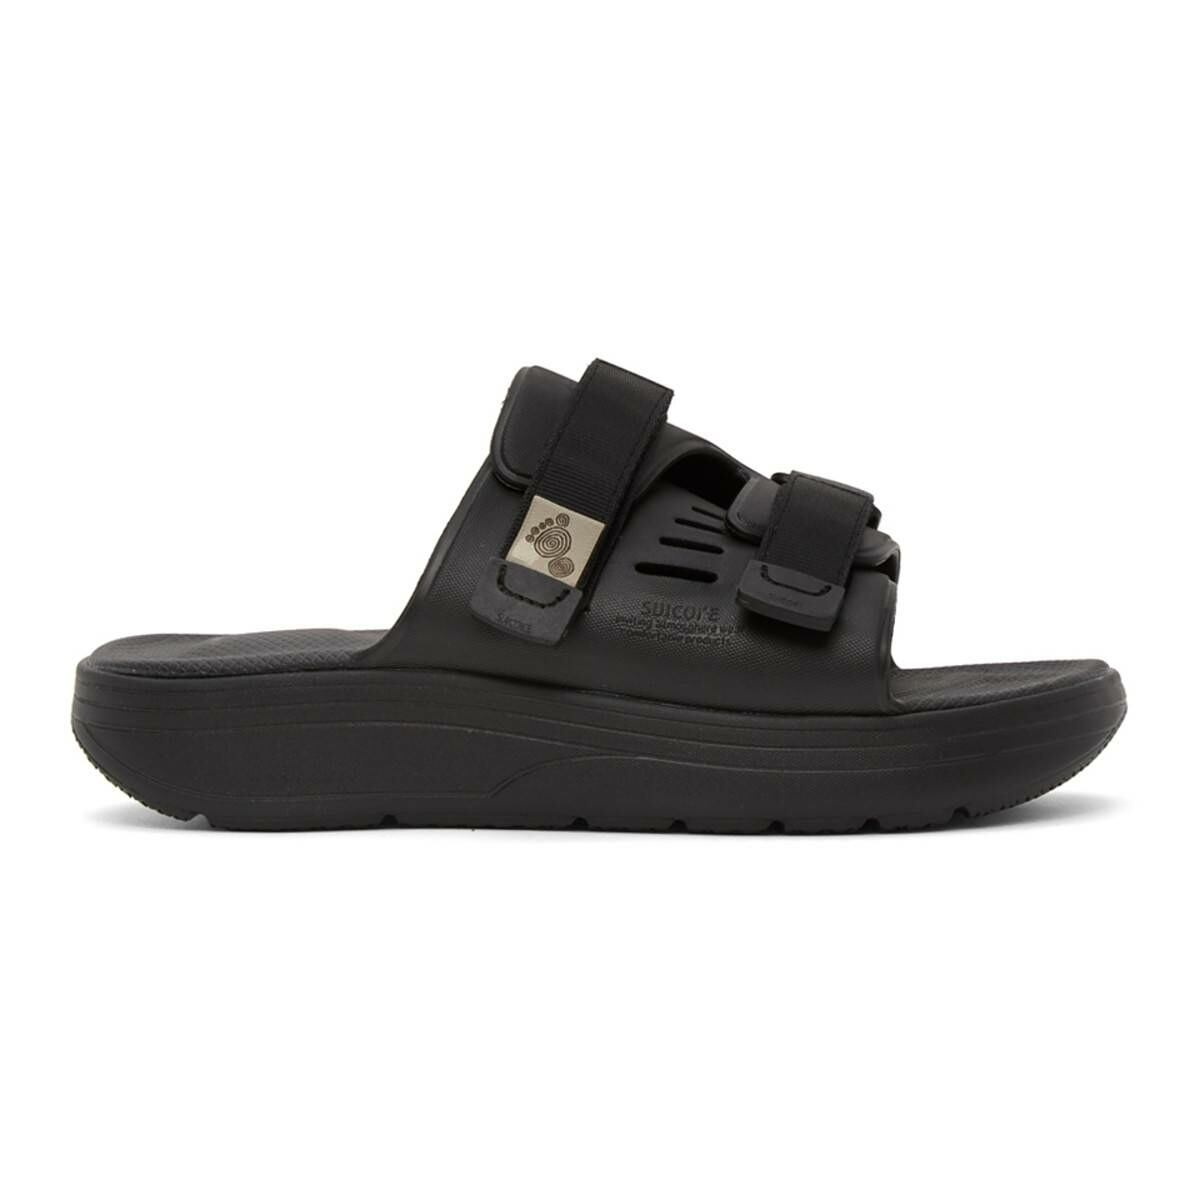 Suicoke Black Urich Sandals Ssense USA MEN Men SHOES Mens SANDALS